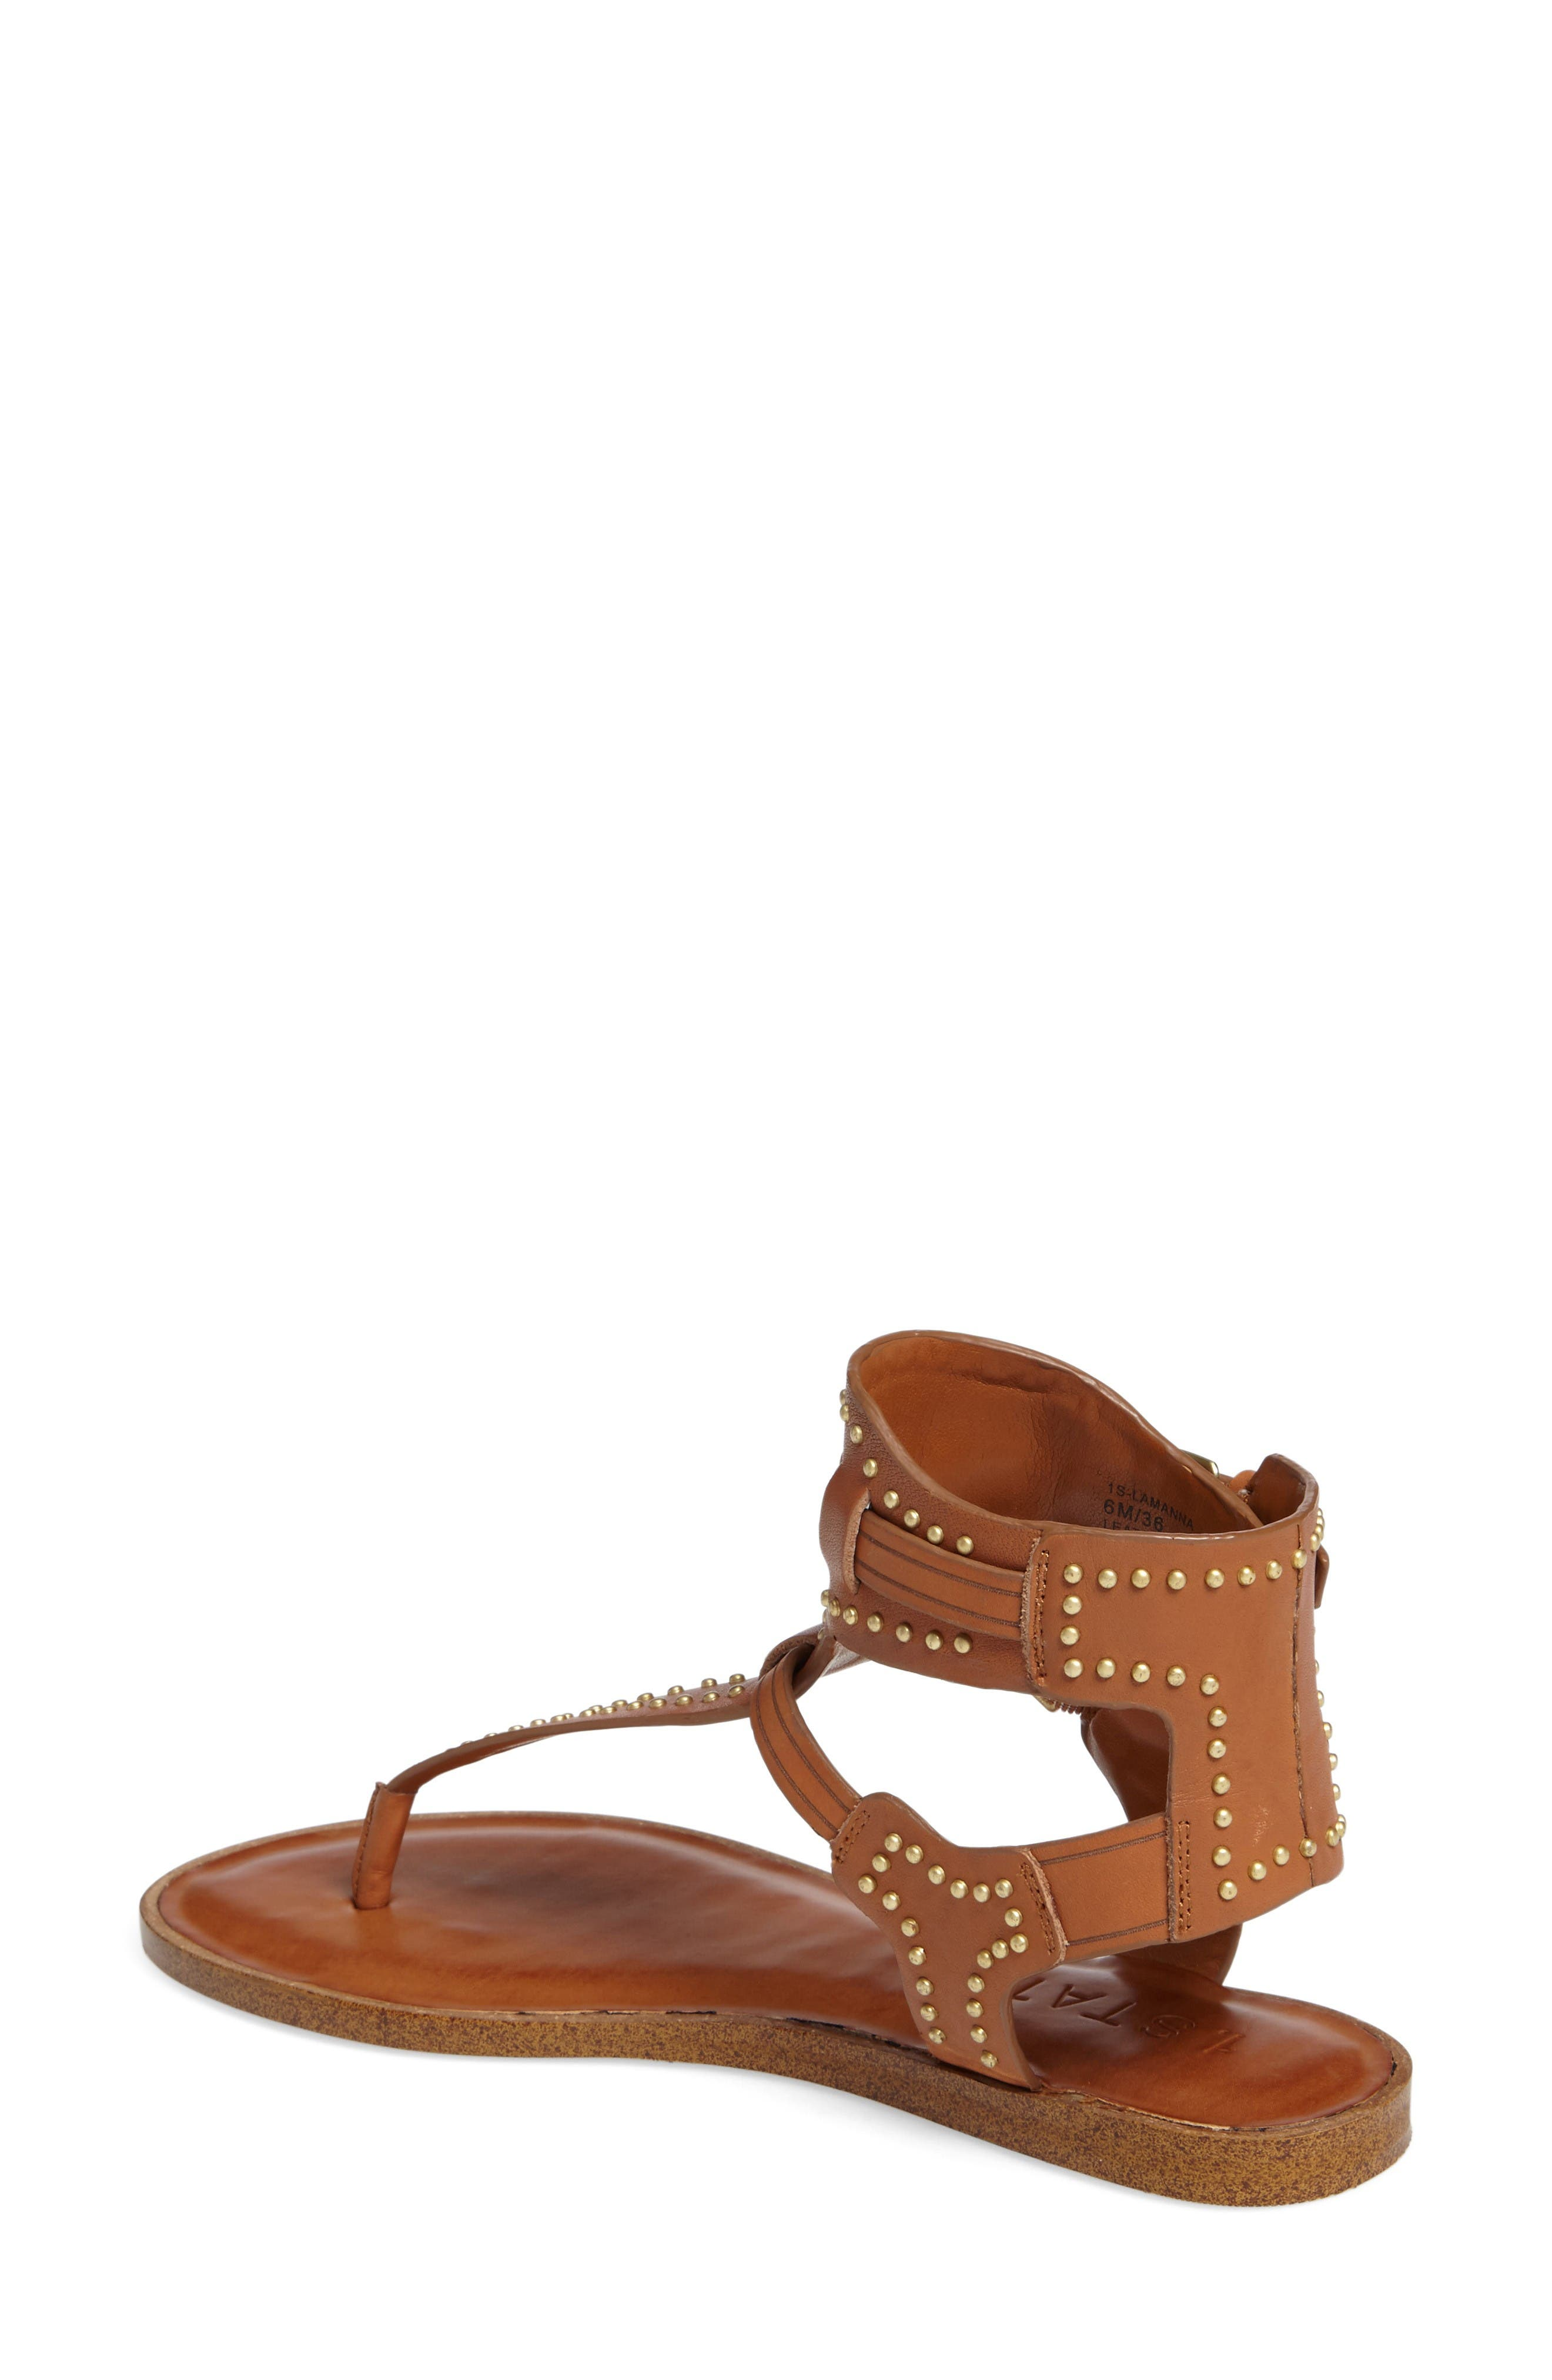 Lamanna Ankle Strap Sandal,                             Alternate thumbnail 2, color,                             Tan Leather